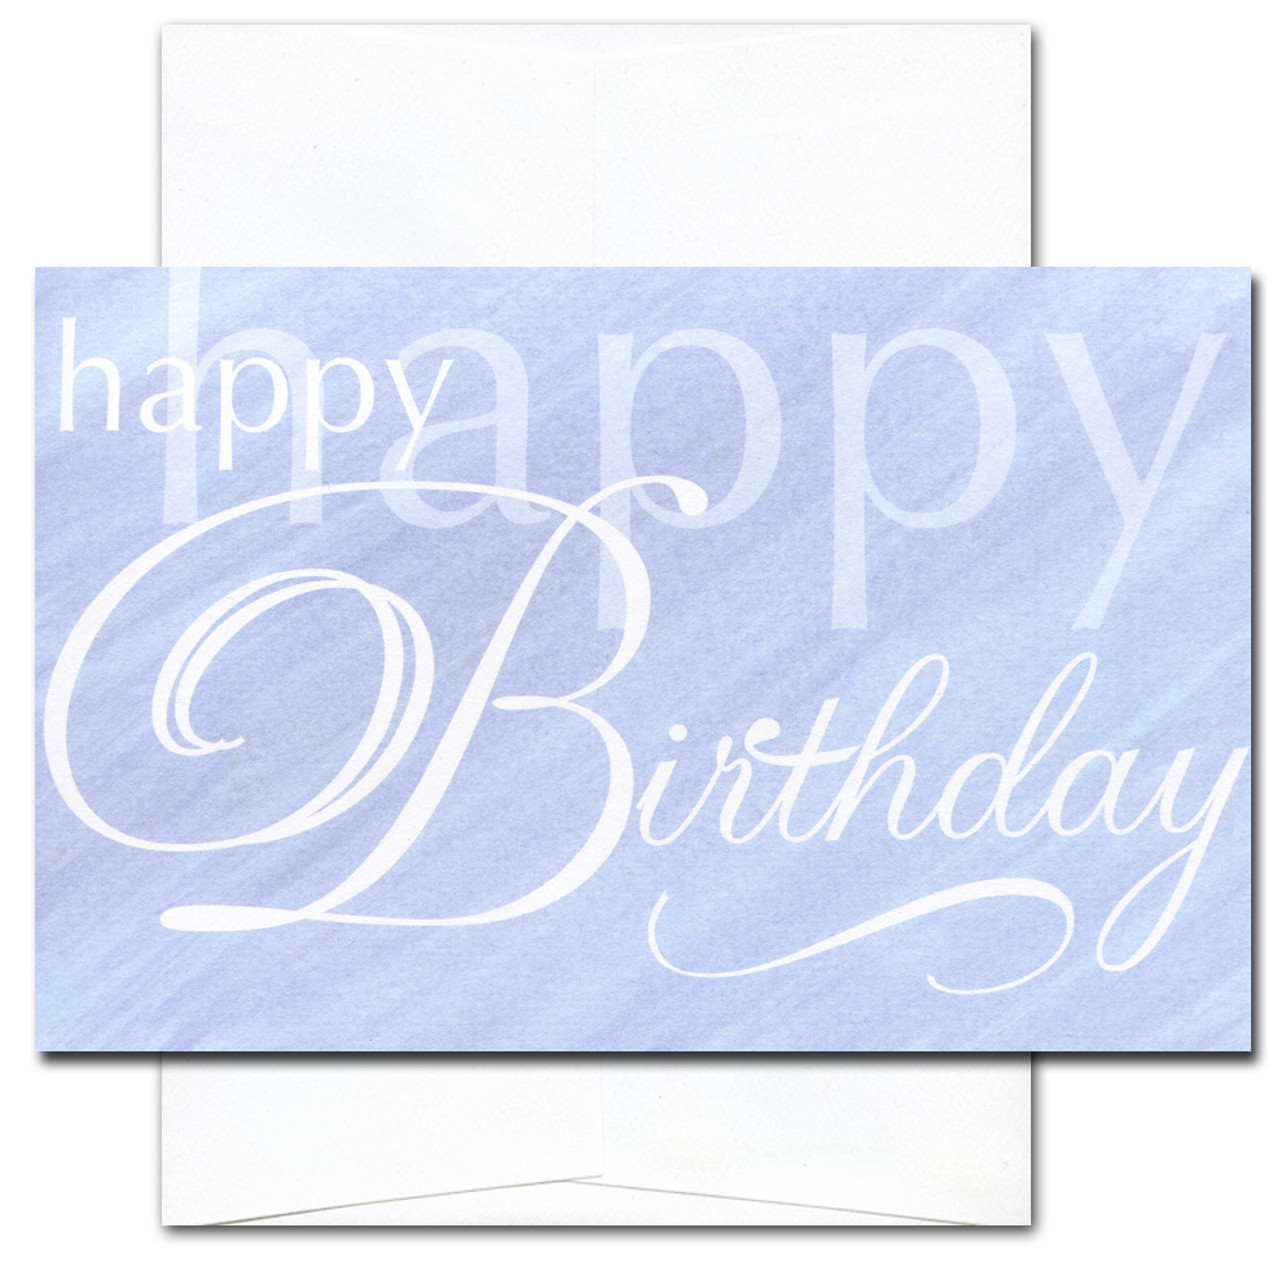 Happy Birthday Card Cover Has White Text On A Blue Watercolor Background